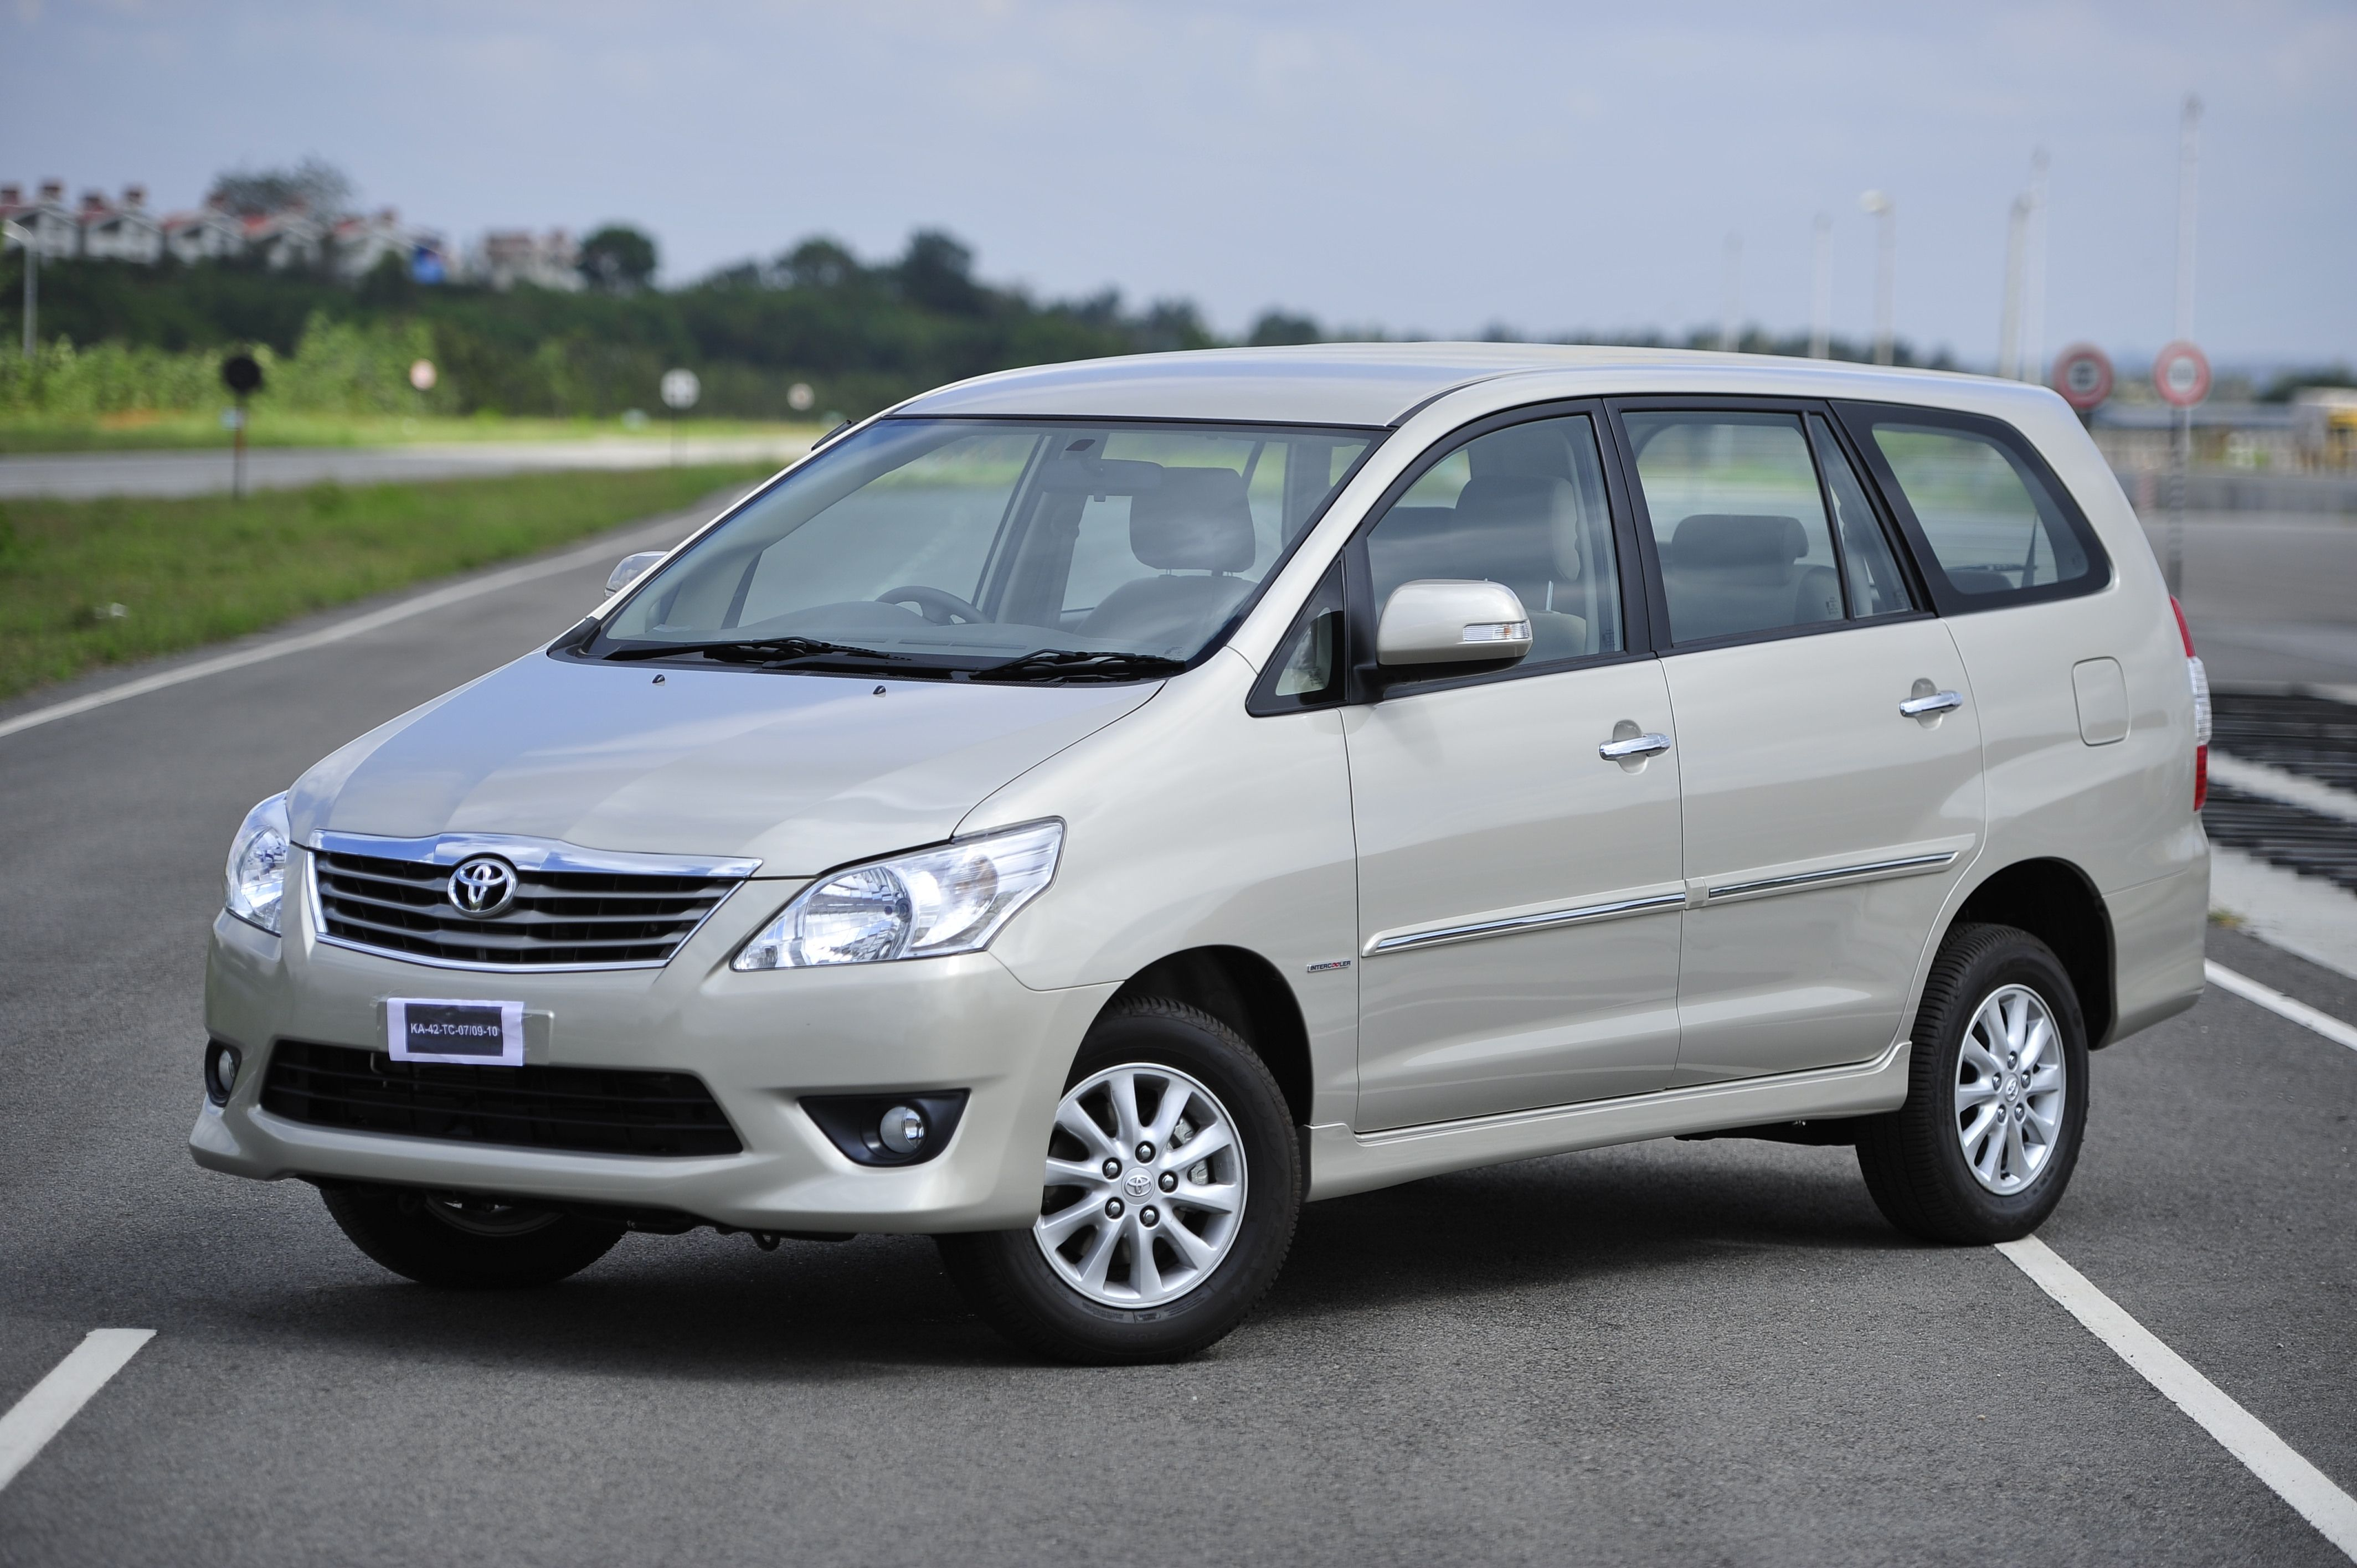 Travel By Car Travelling By Car Is Perhaps The Easiest Method To Explore The Country And Its Diversity In Toto We Assist Our Clients In Hiring Best C Car Rental